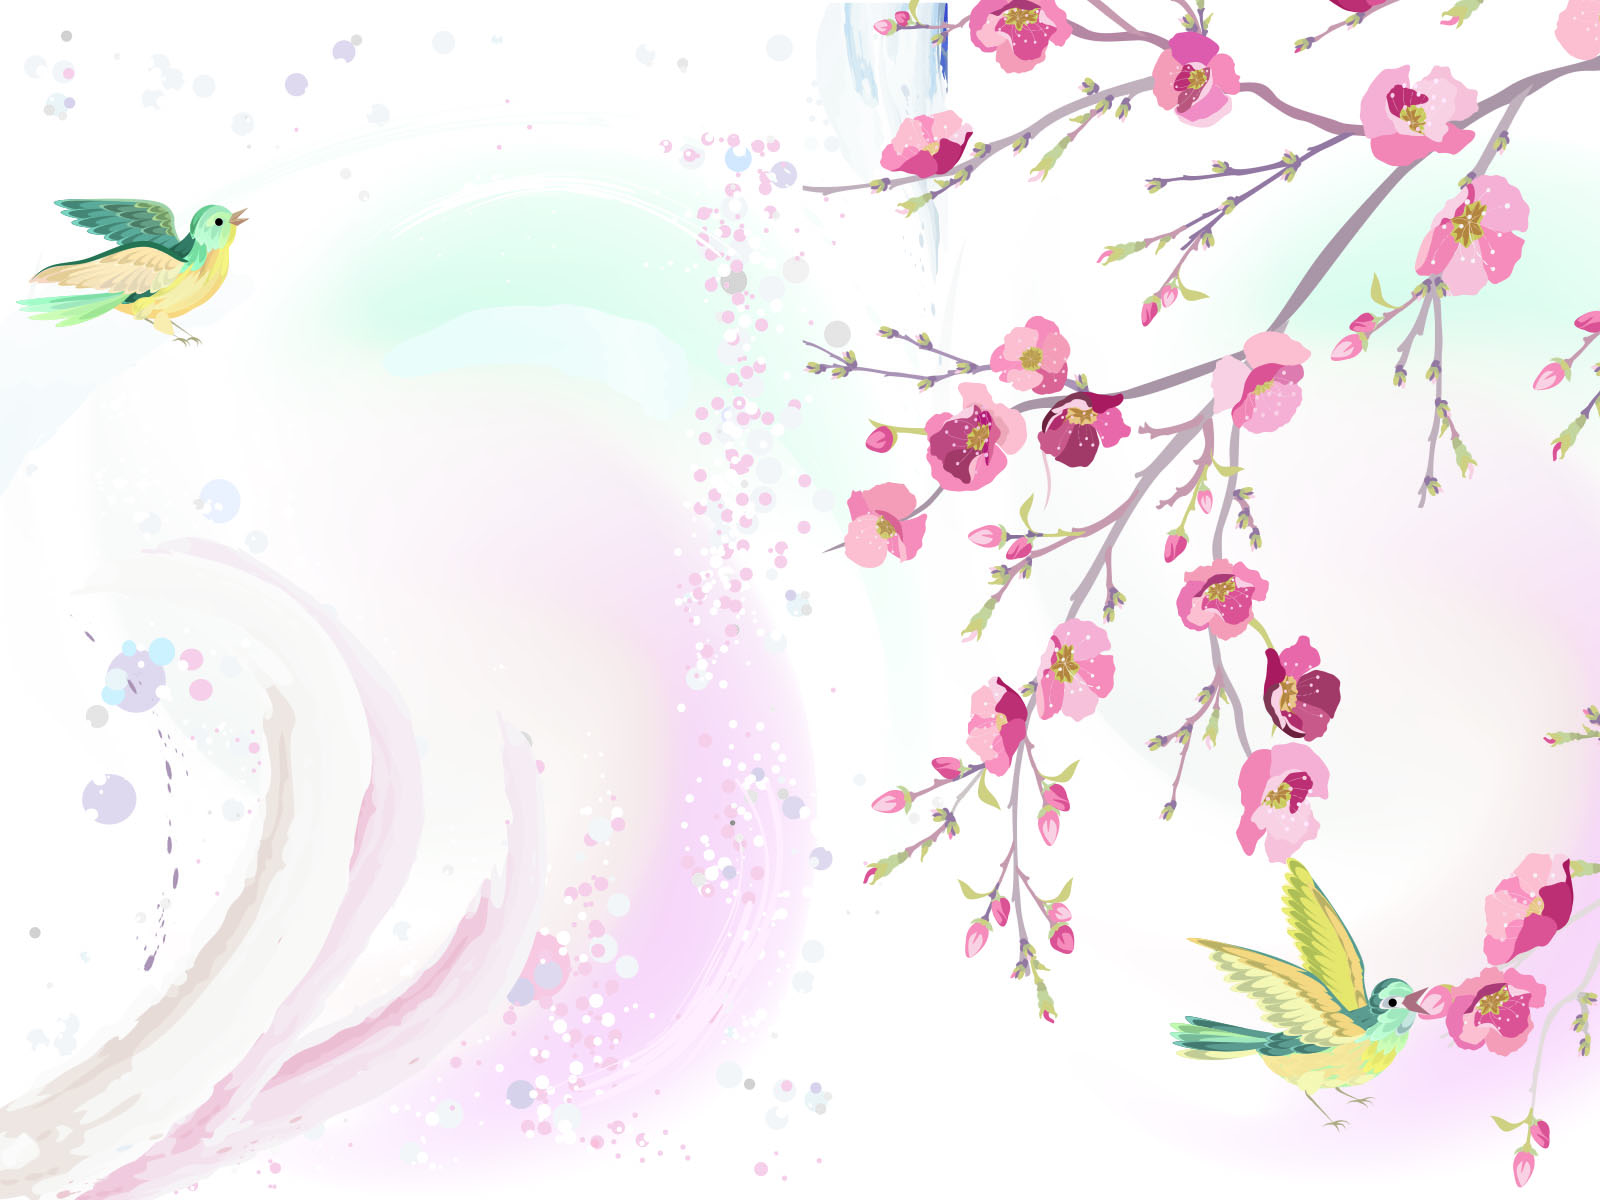 House Painting Designs And Colors Hand Painted Spring Floral Birds Backgrounds Design